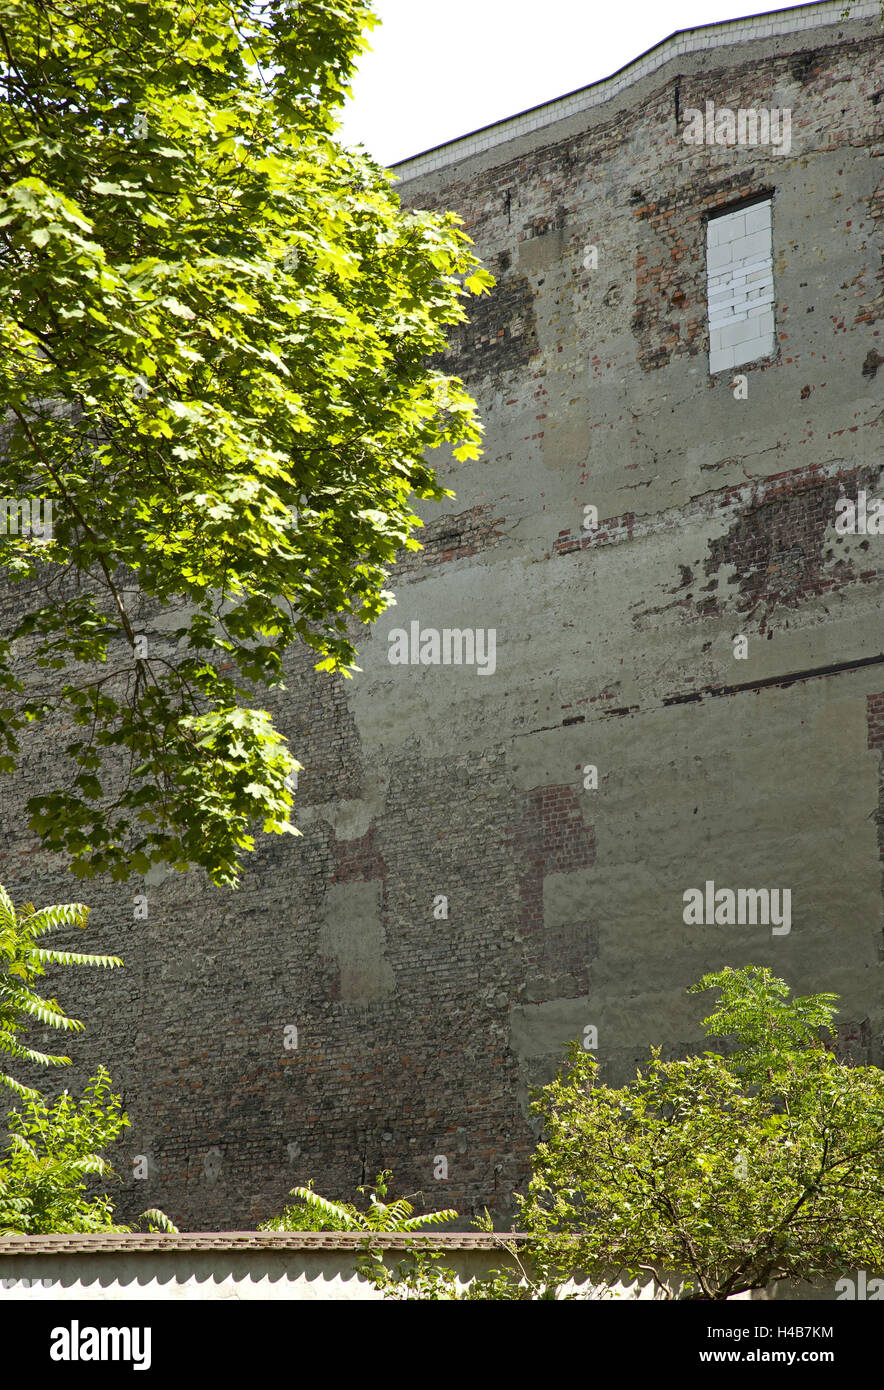 More poorly, window, bricked up, tree, - Stock Image